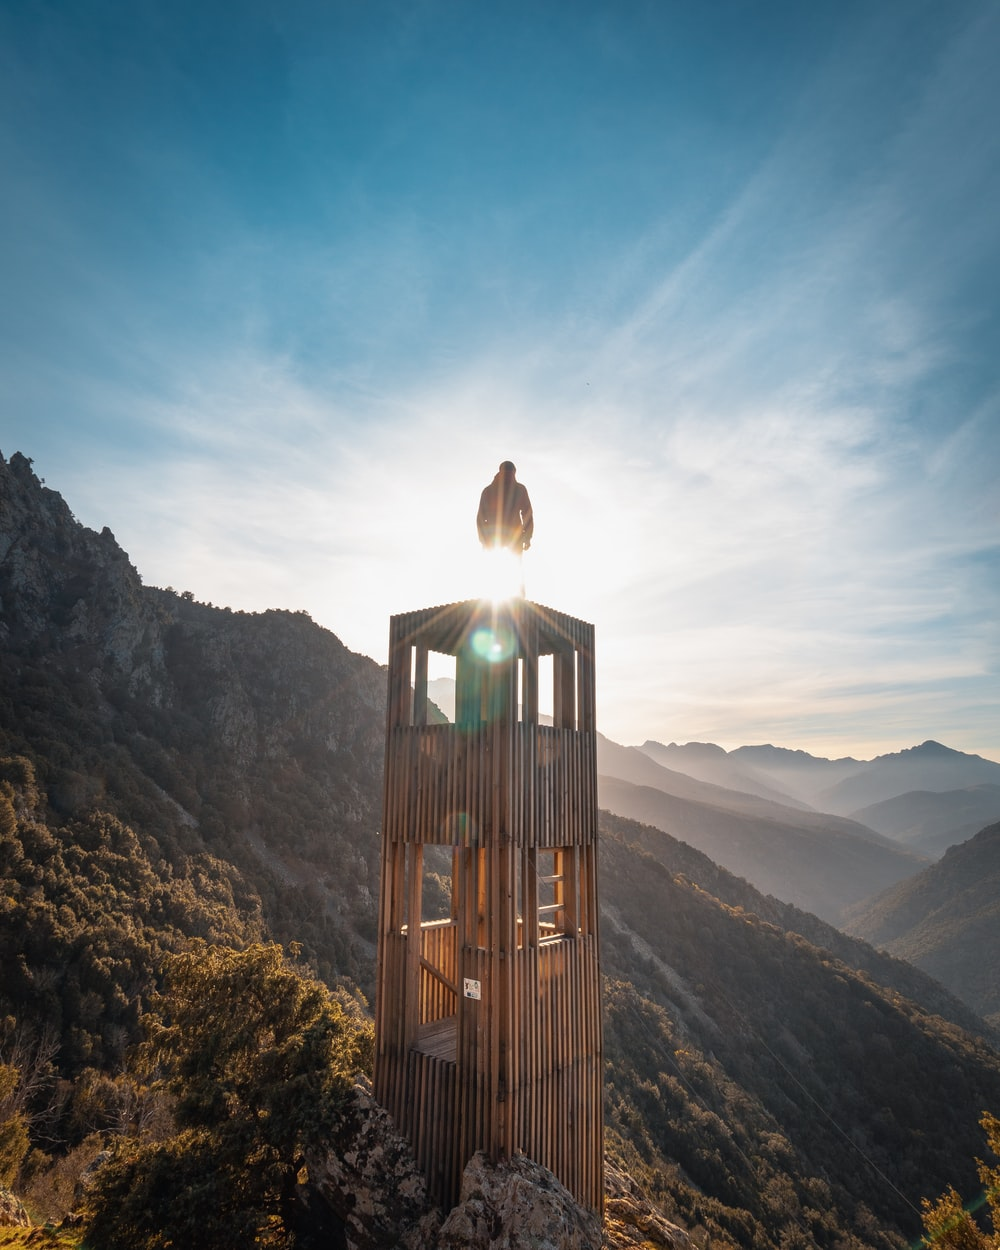 brown wooden tower on mountain during daytime